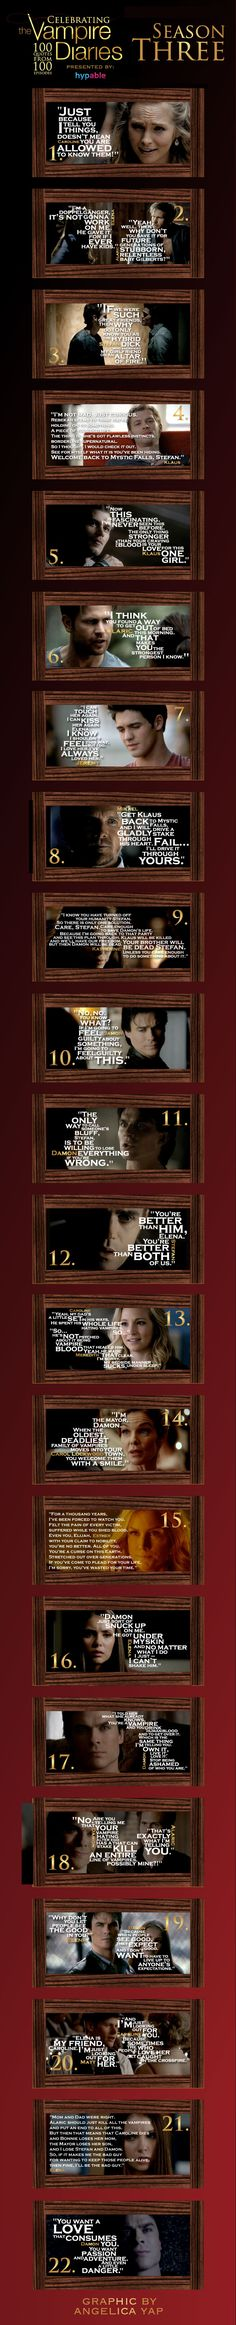 Celebrating 'The Vampire Diaries' with 100 quotes from 100 episodes: Season 3 http://sulia.com/channel/vampire-diaries/f/822fe232-e128-4b1d-8308-8ffff9d6cf08/?source=pin&action=share&btn=small&form_factor=desktop&pinner=54575851